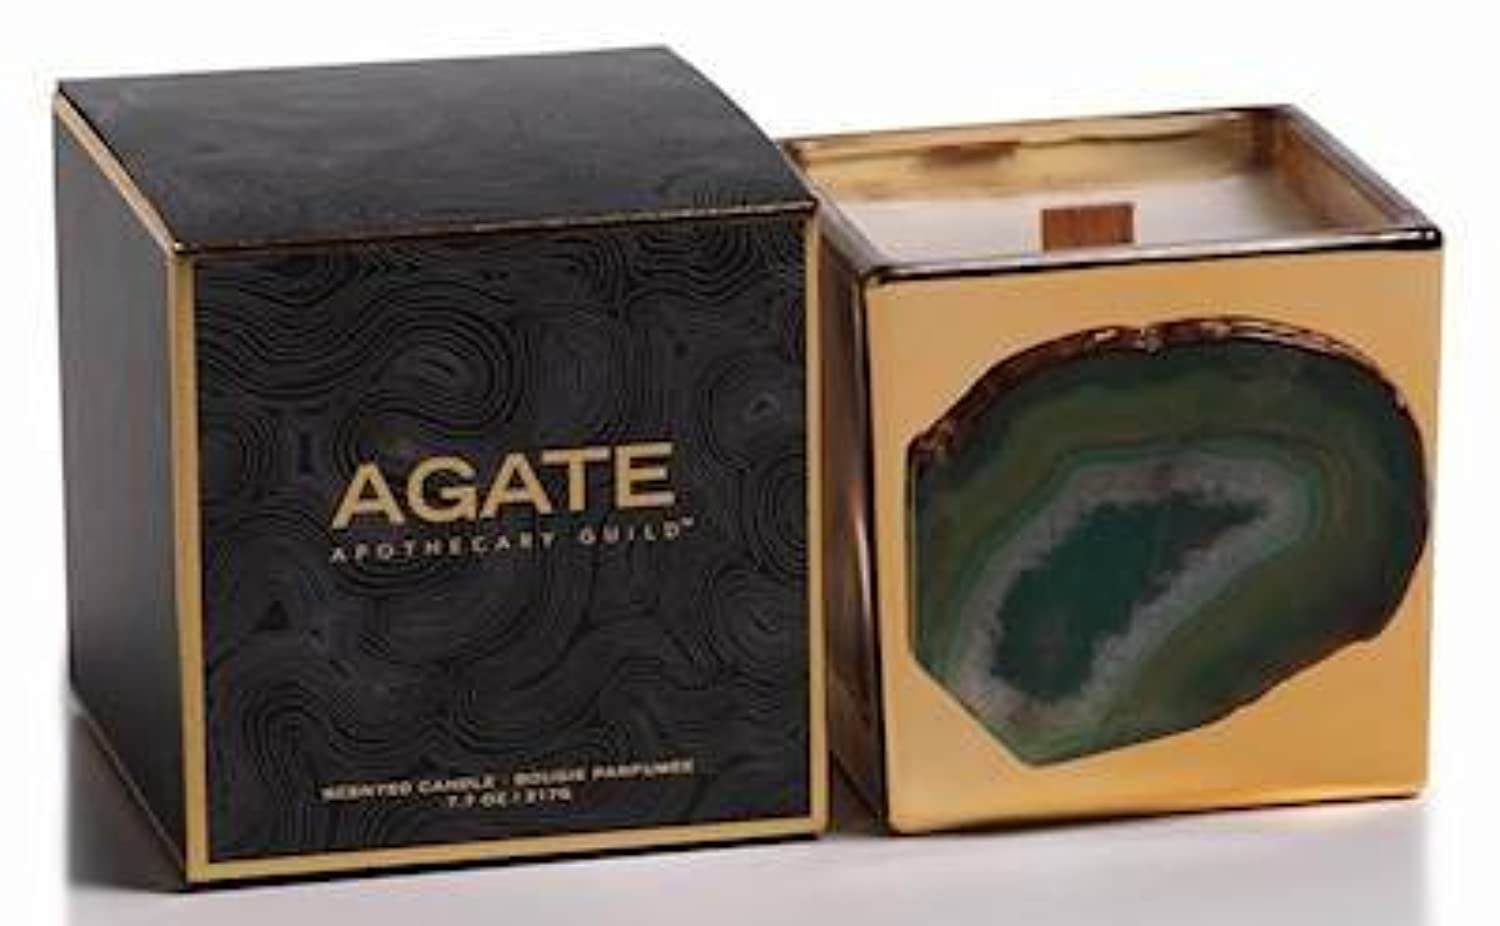 Zodax Agate Scented Candle Jar 50 Hours Burn Time- Siberian Fir (217gm / 7.7oz)